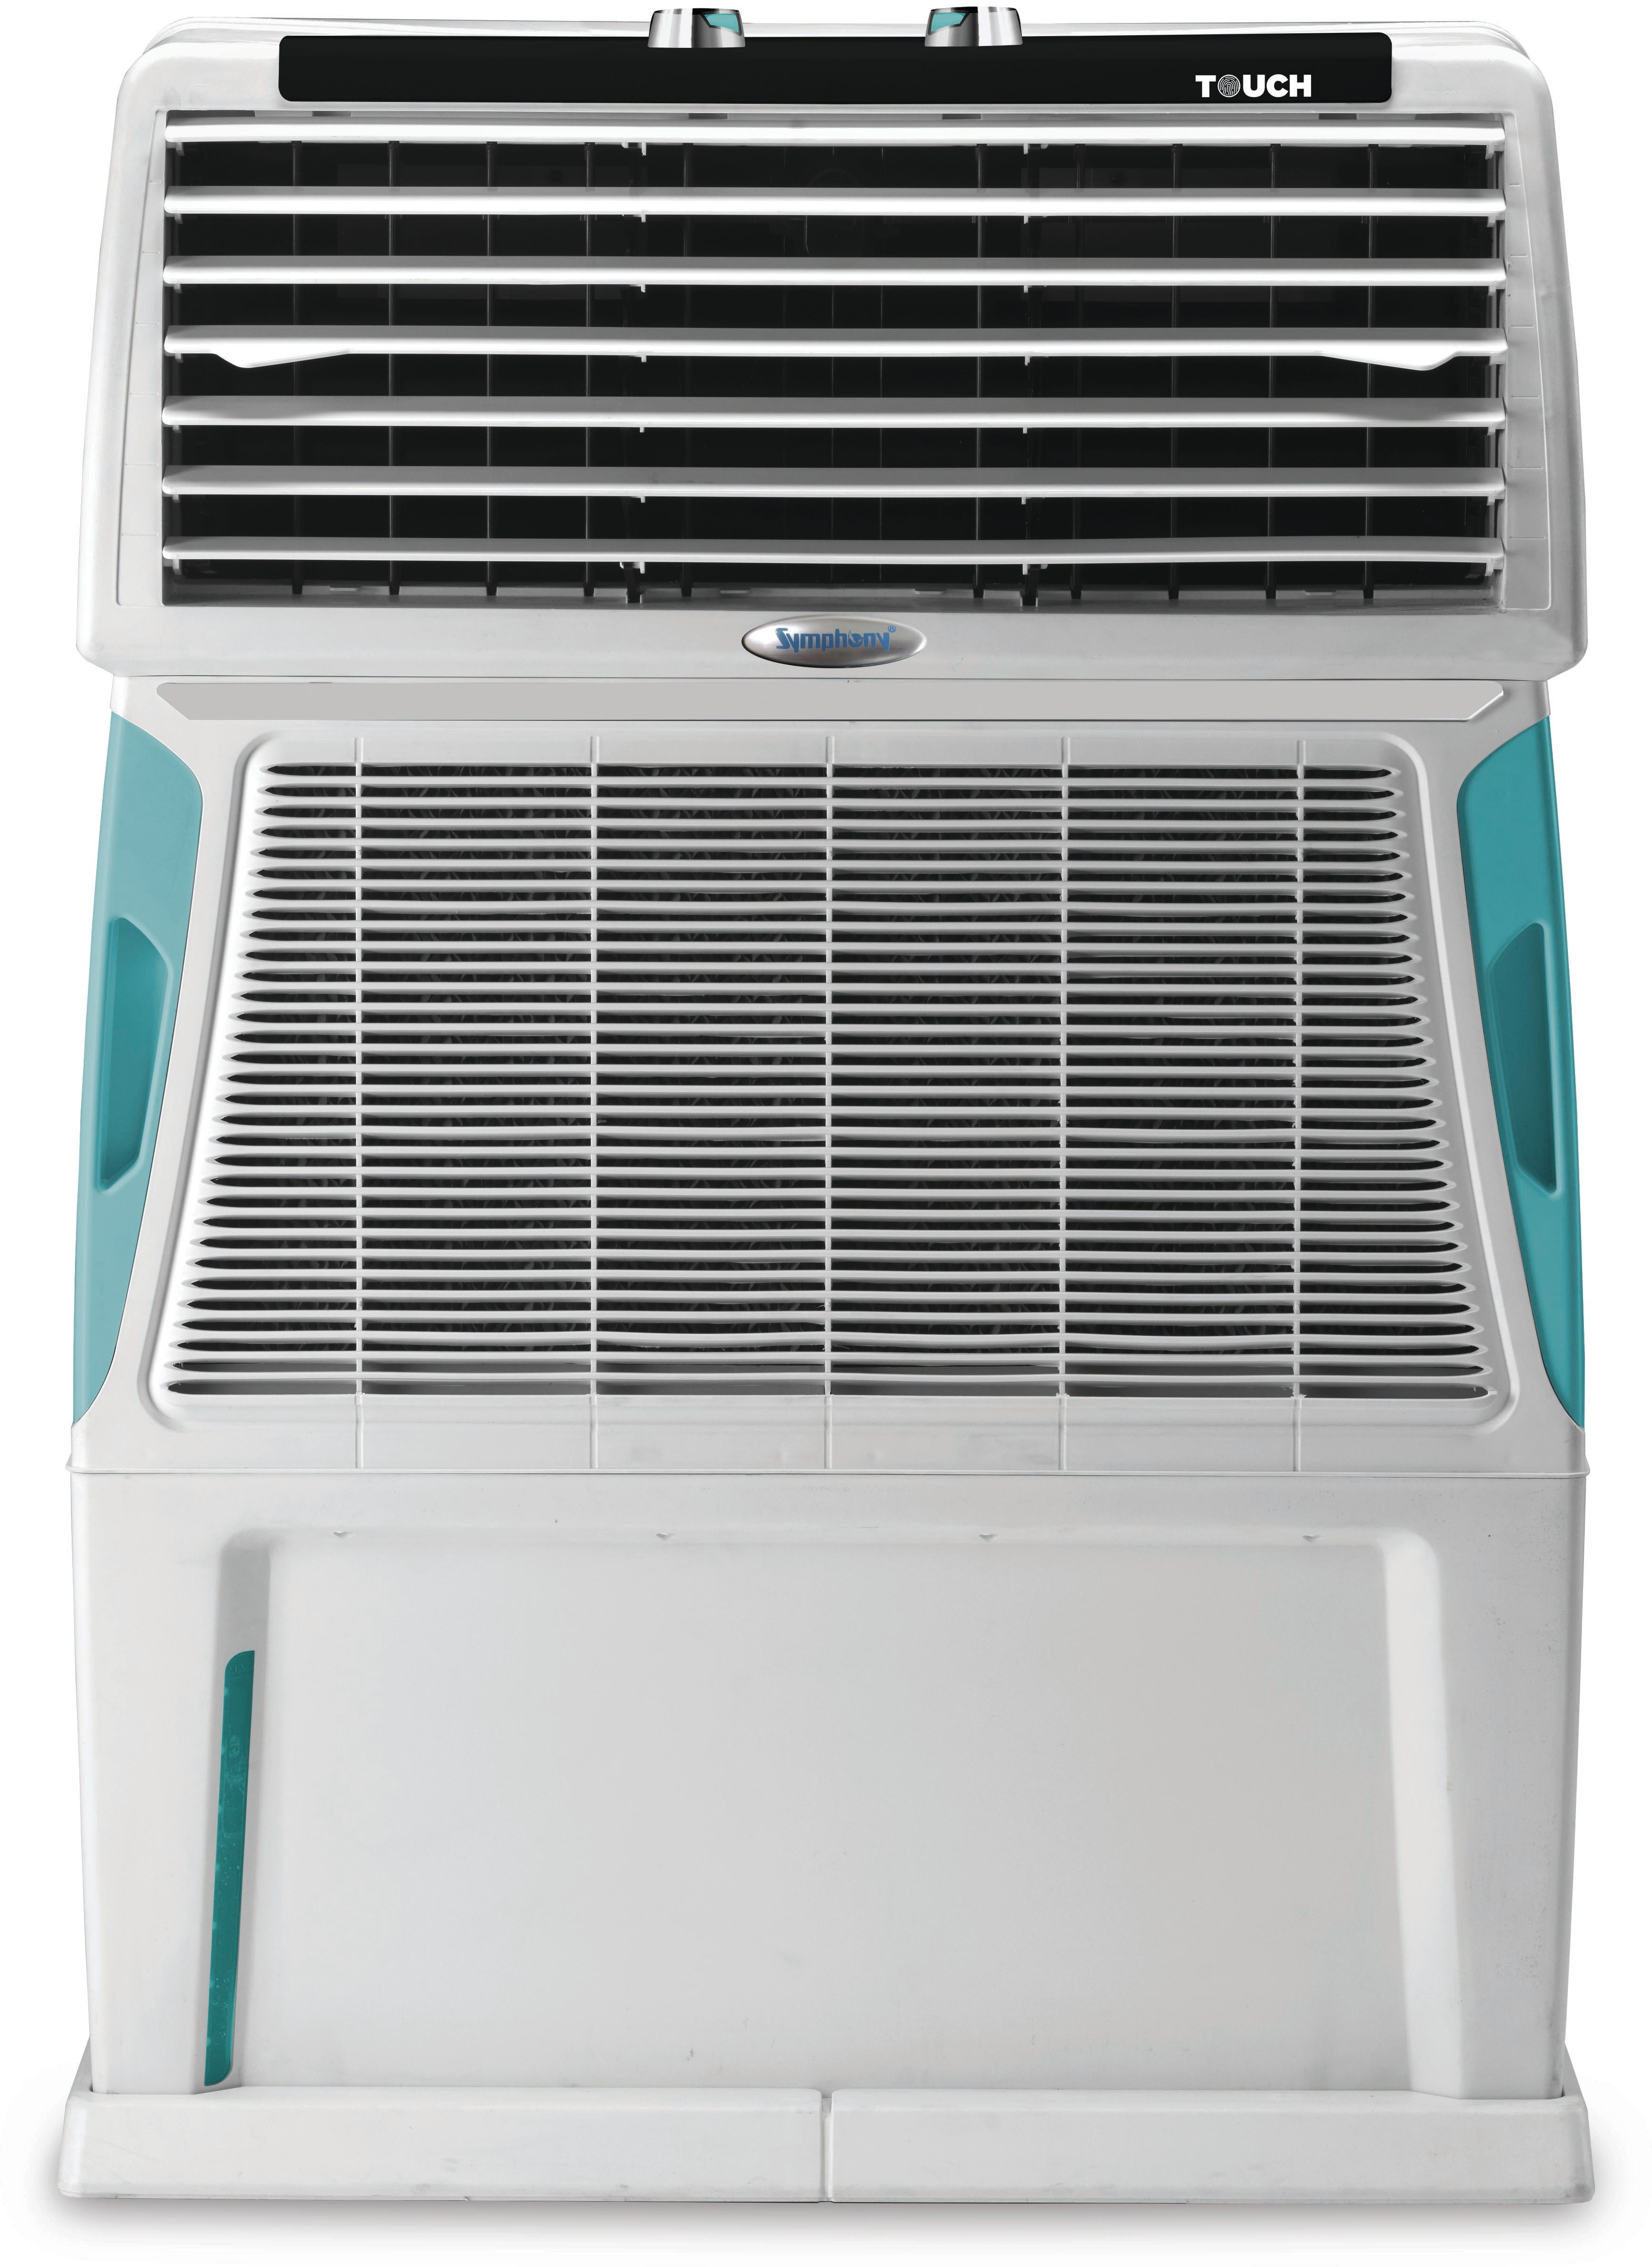 Symphony Touch 80 Room Air Cooler Image